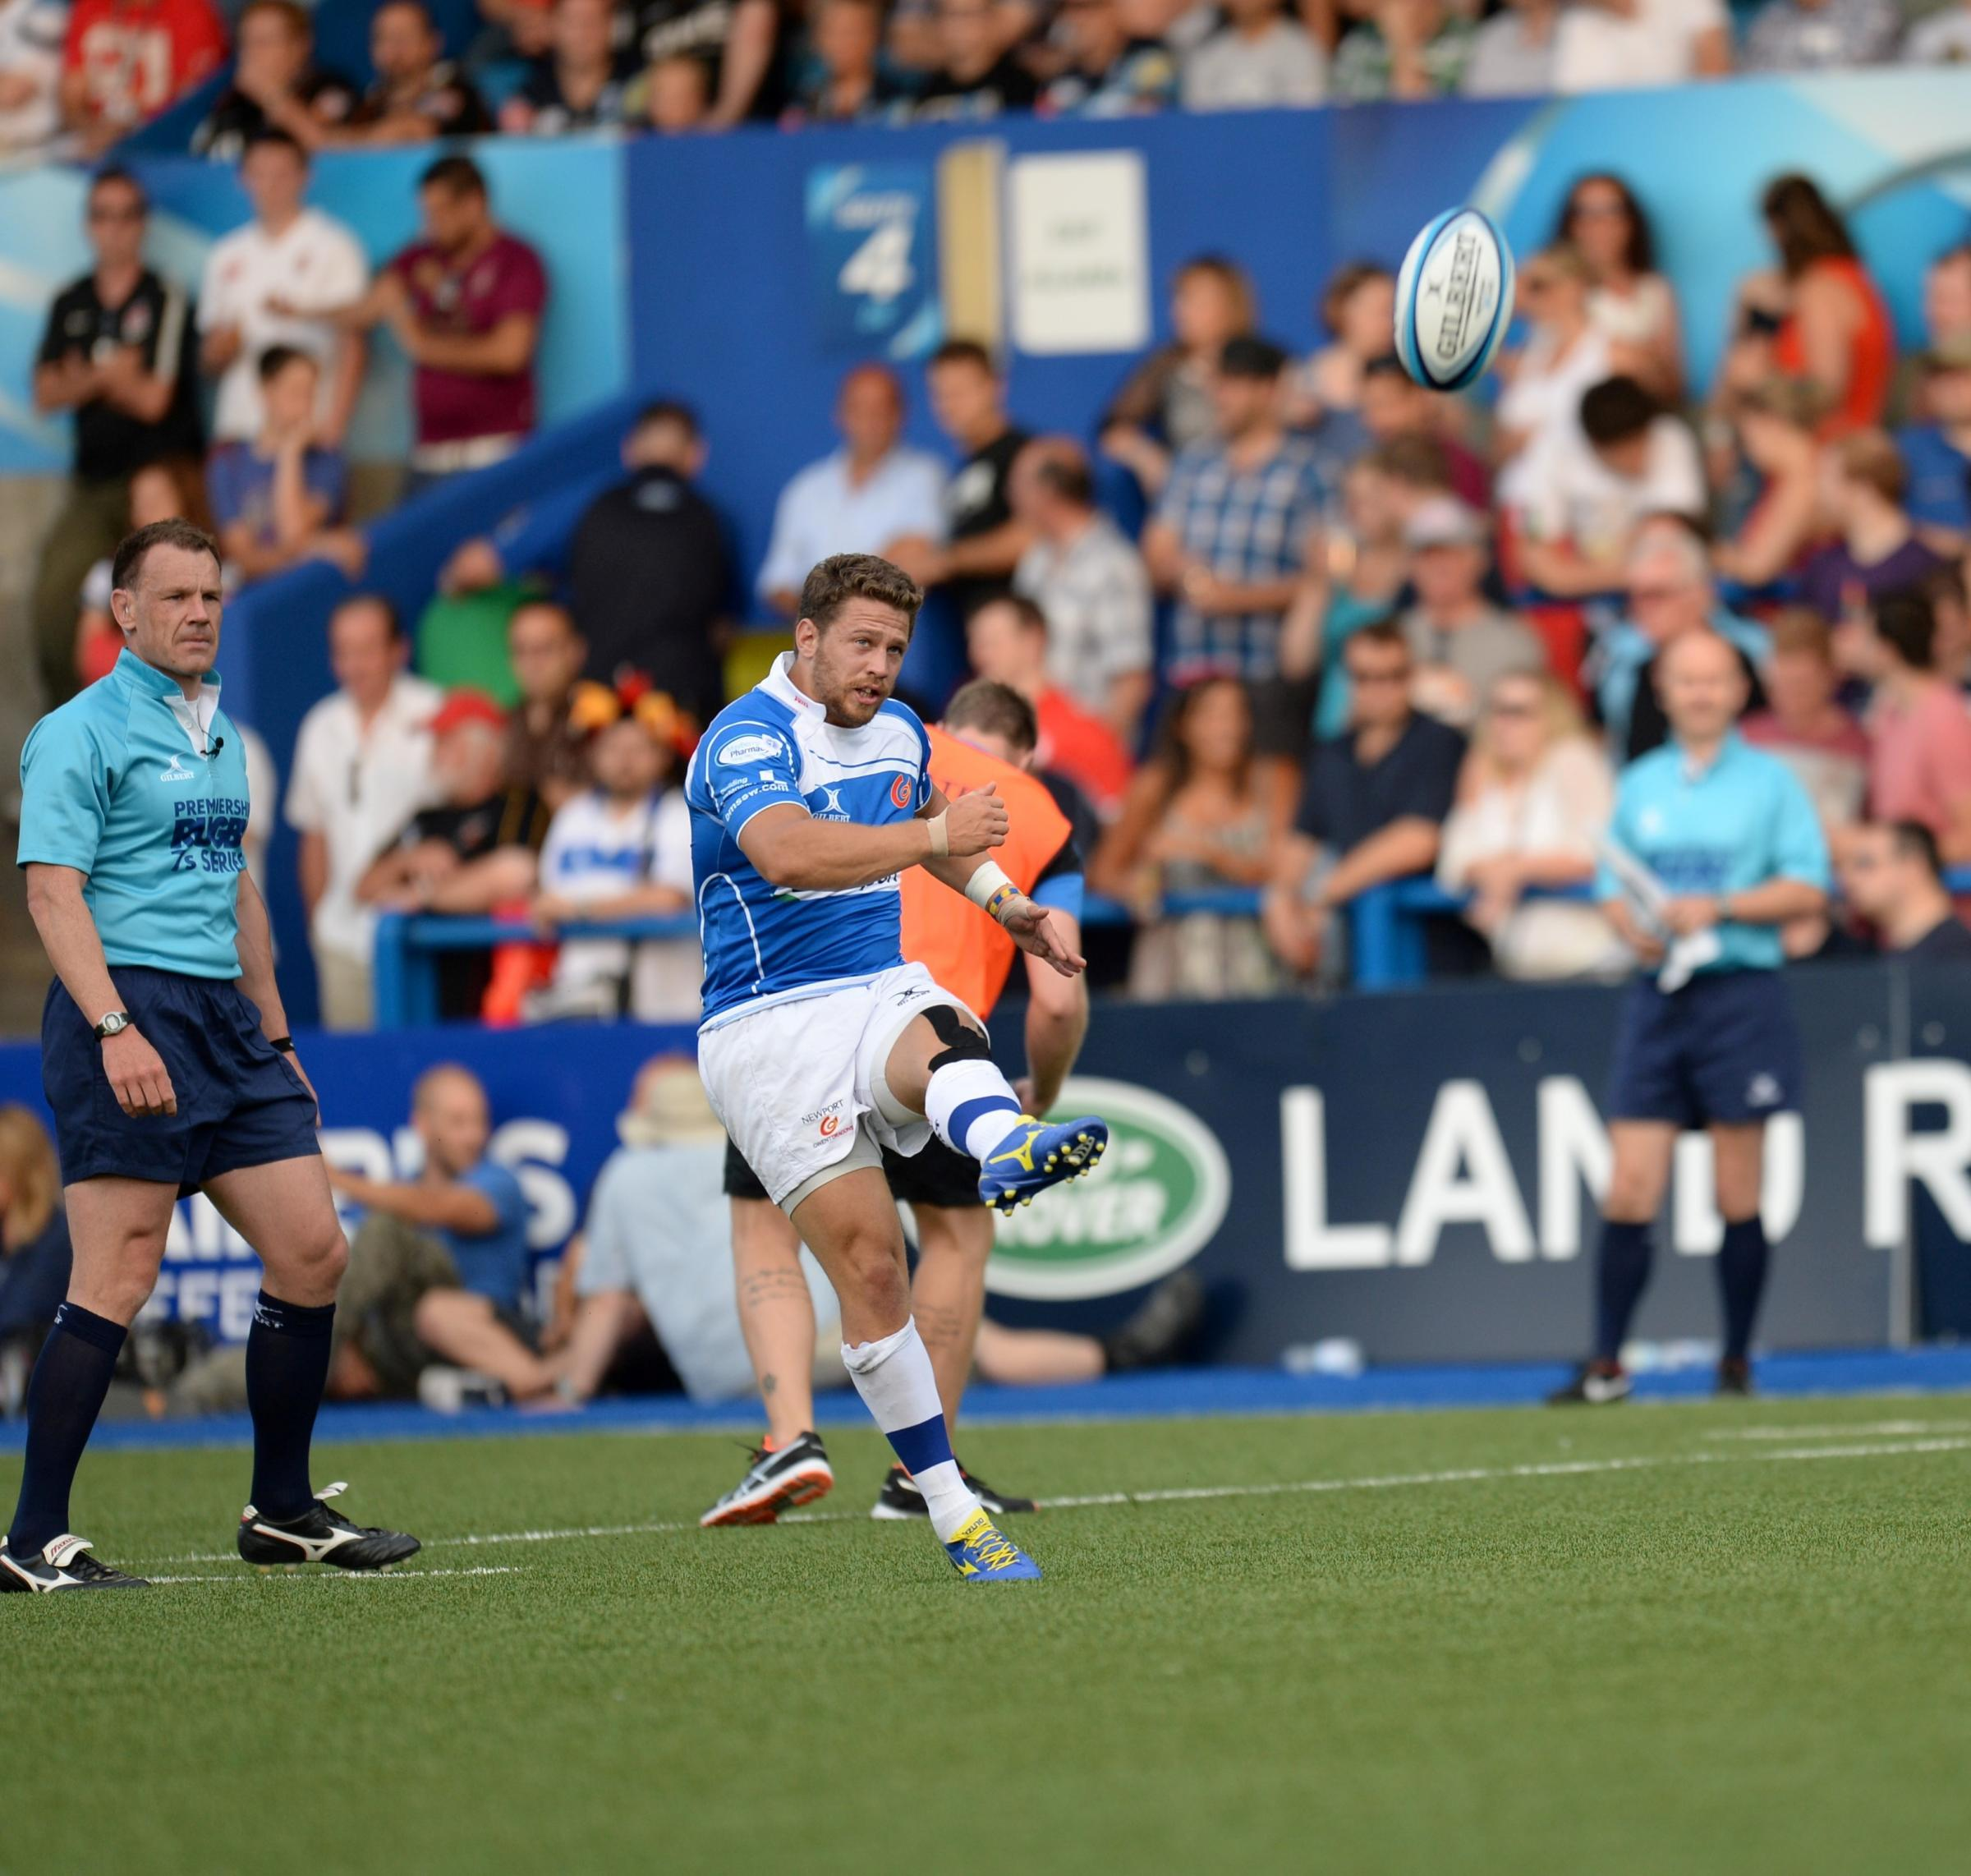 Dragons in Premiership Sevens. Rhys Jones kicks for goal. (8633302)